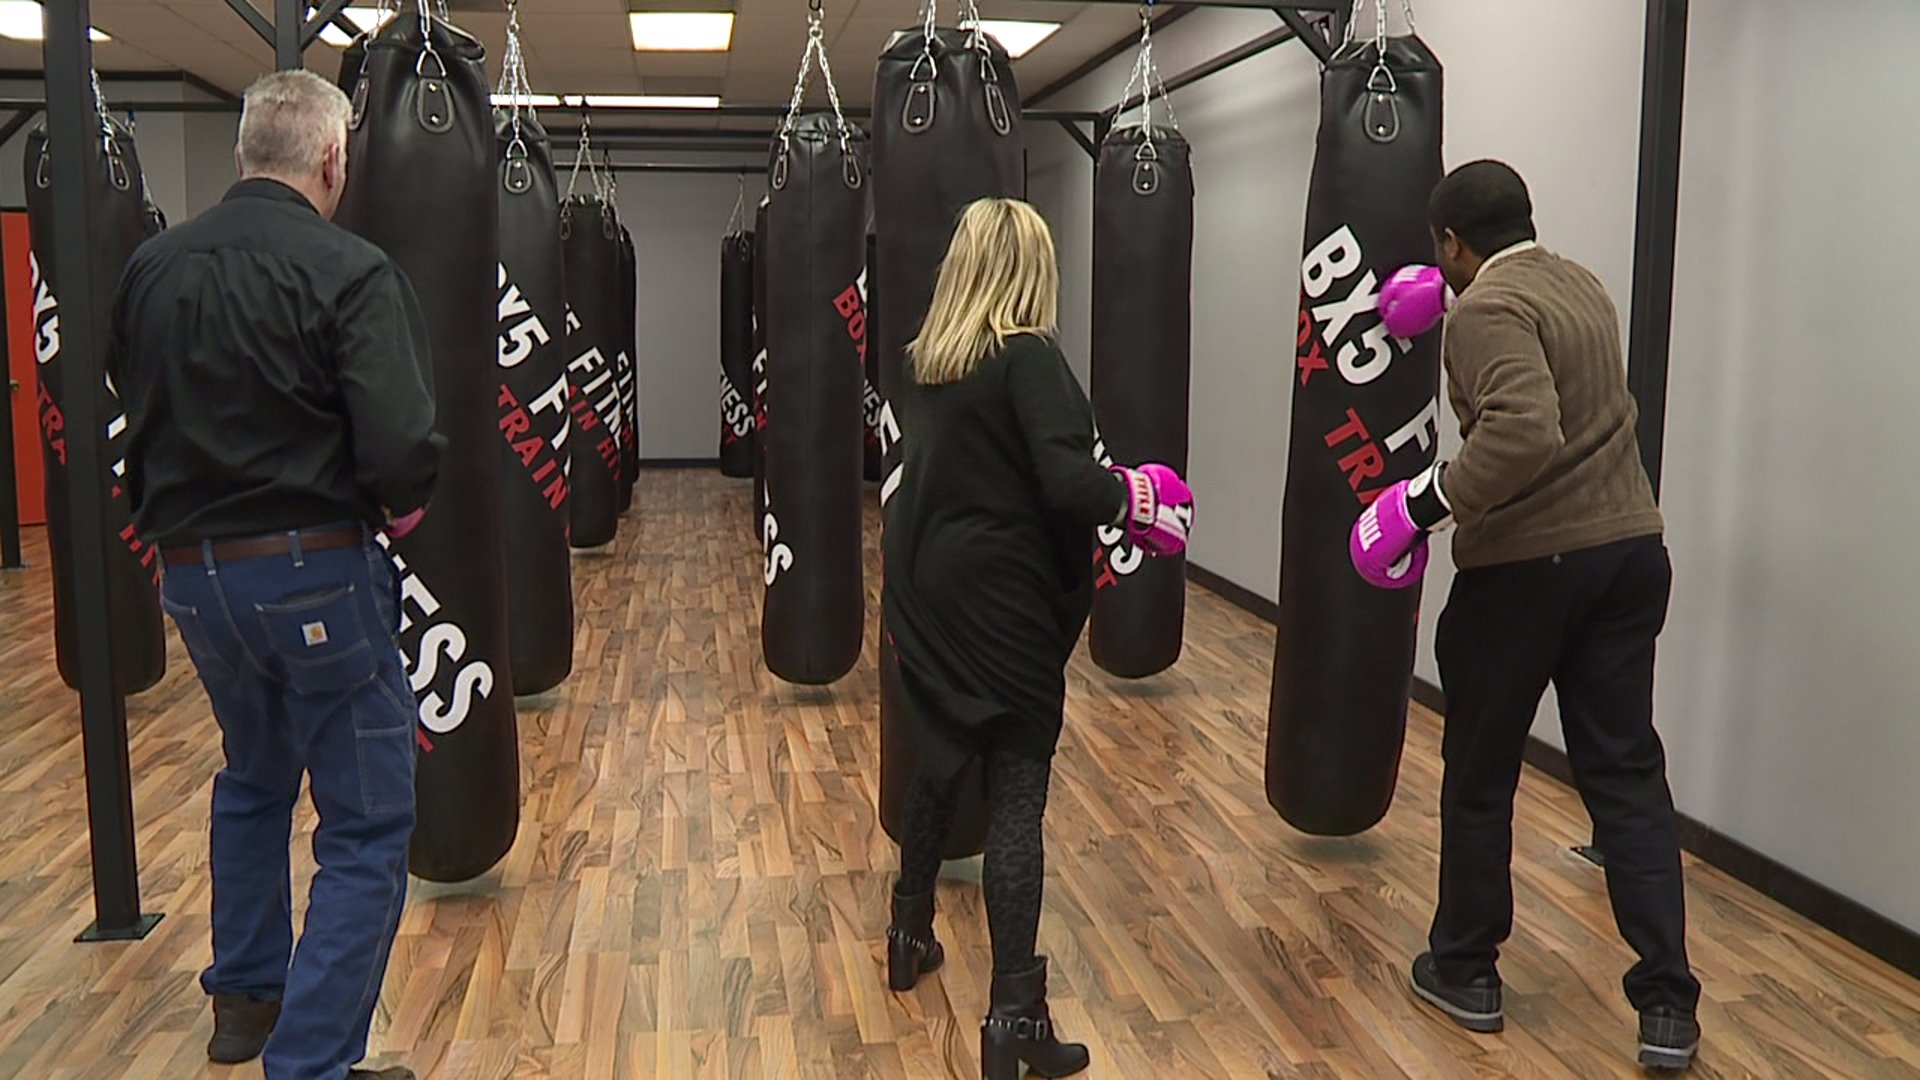 Community members in Alamance County raising money for breast cancer patients with boxing fundraiser